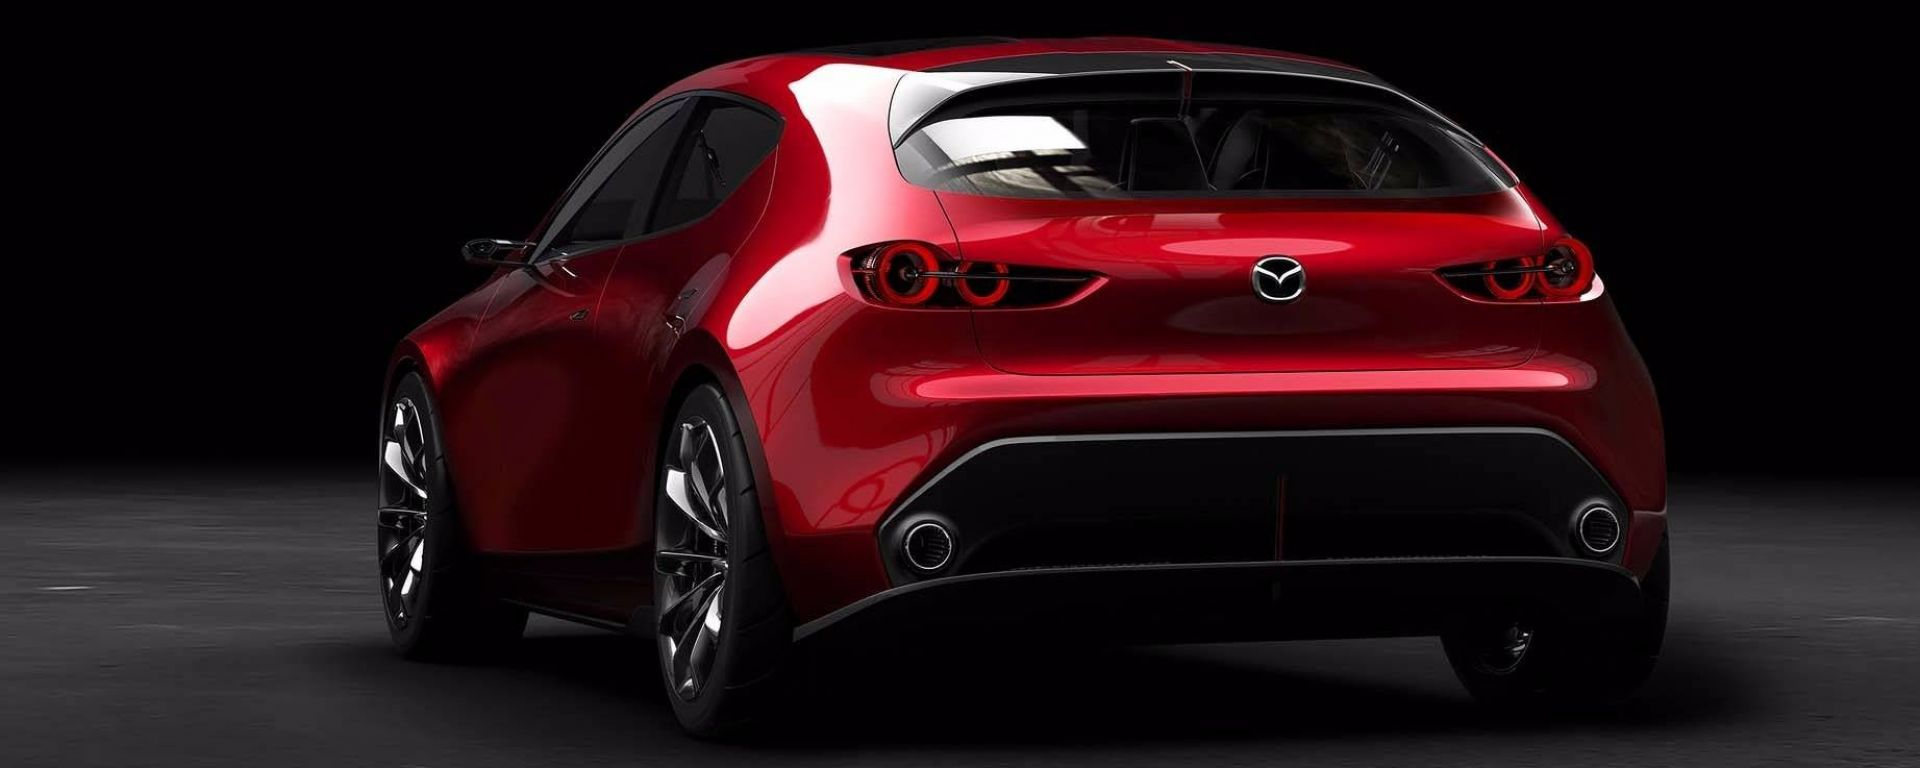 Mazda 3: debutto al salone di Los Angeles